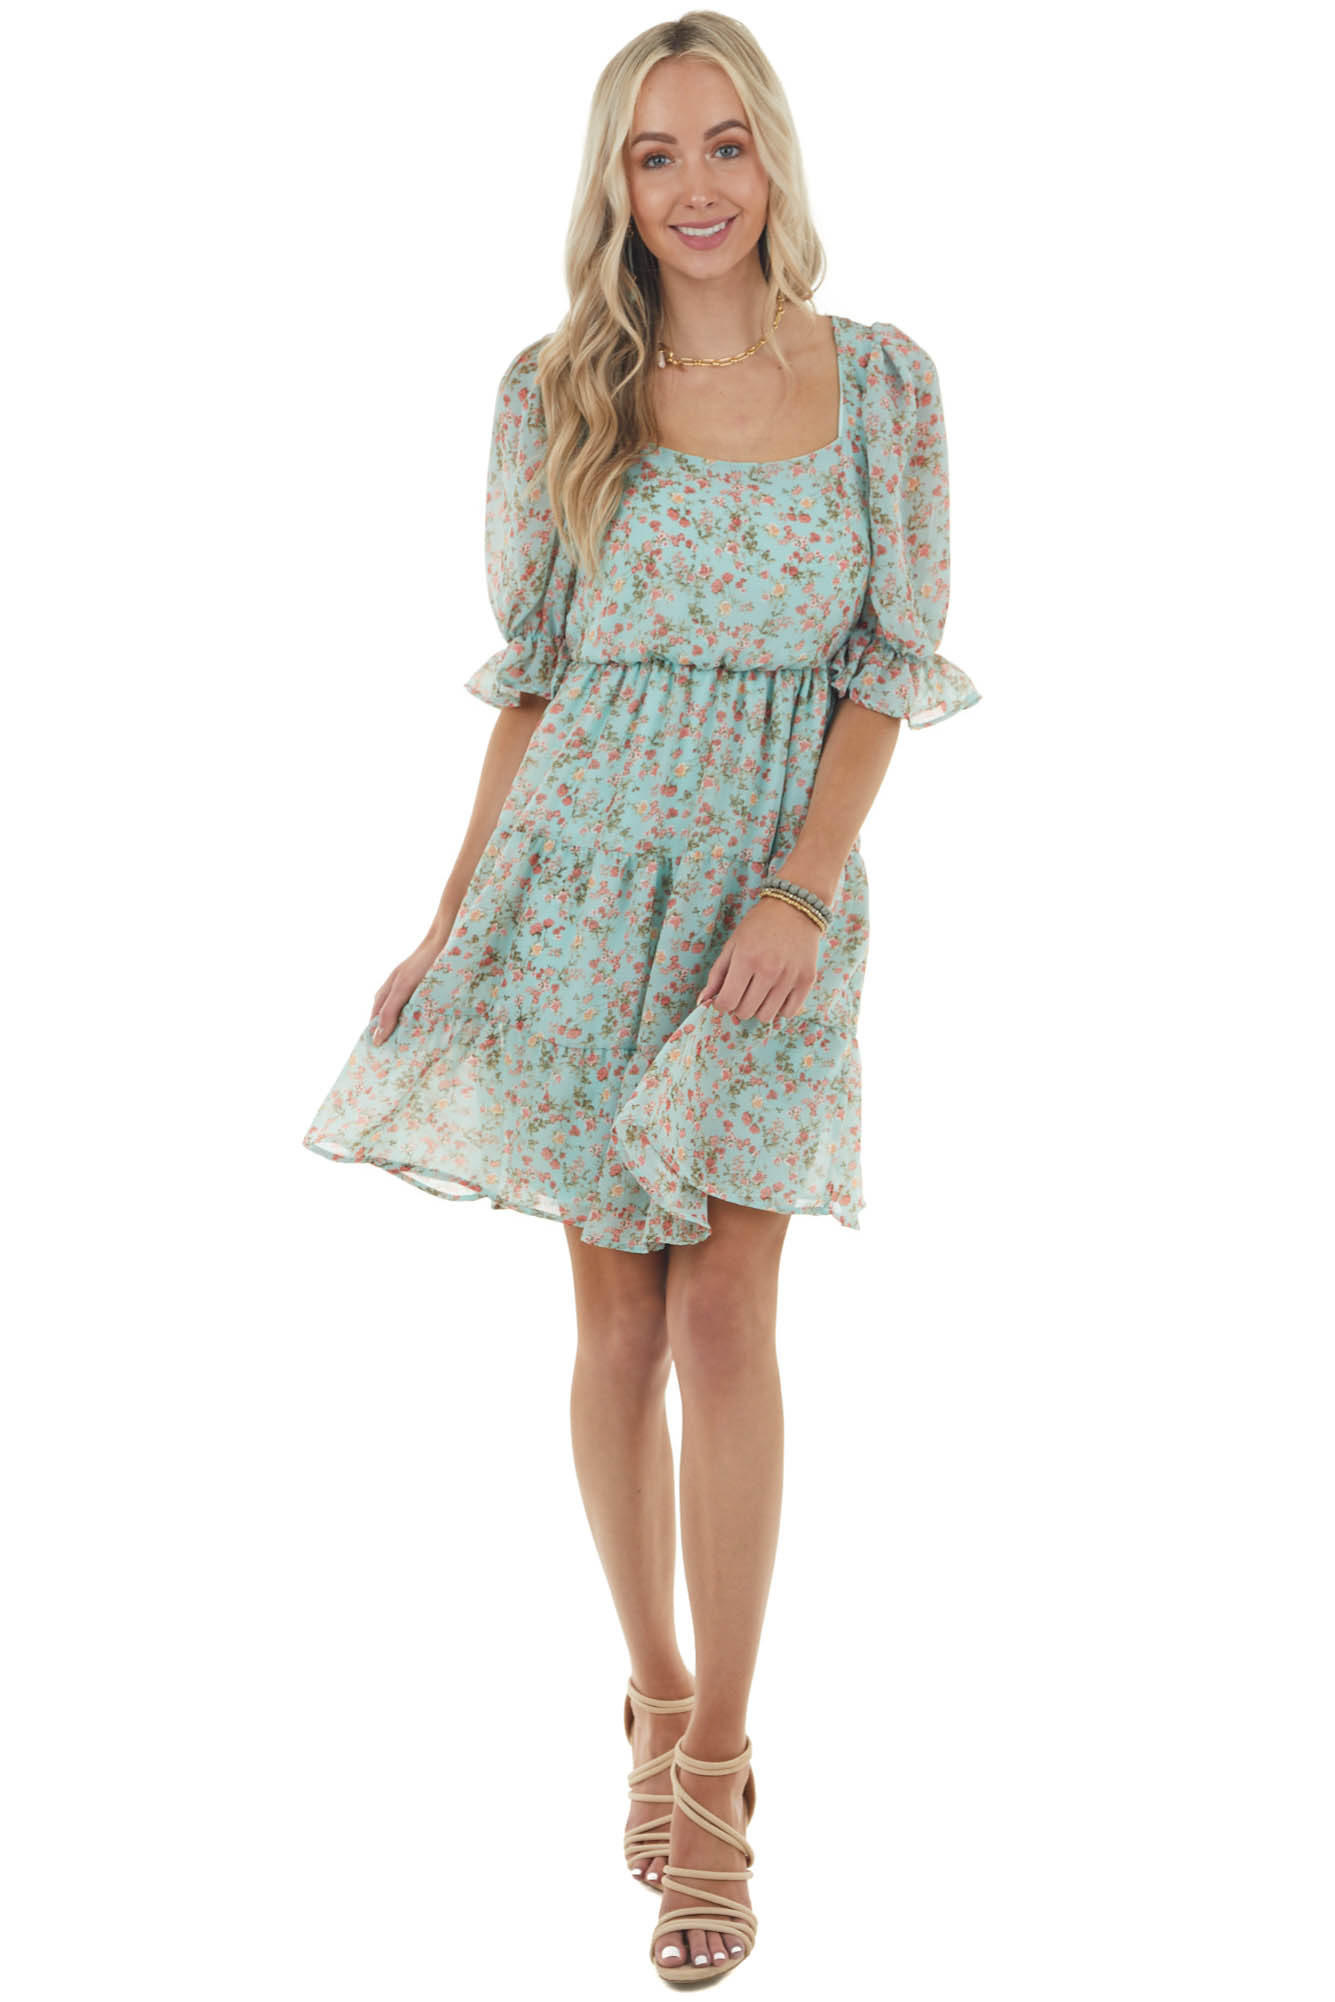 Seafoam Ditsy Floral Short Puff Sleeve Tiered Short Dress